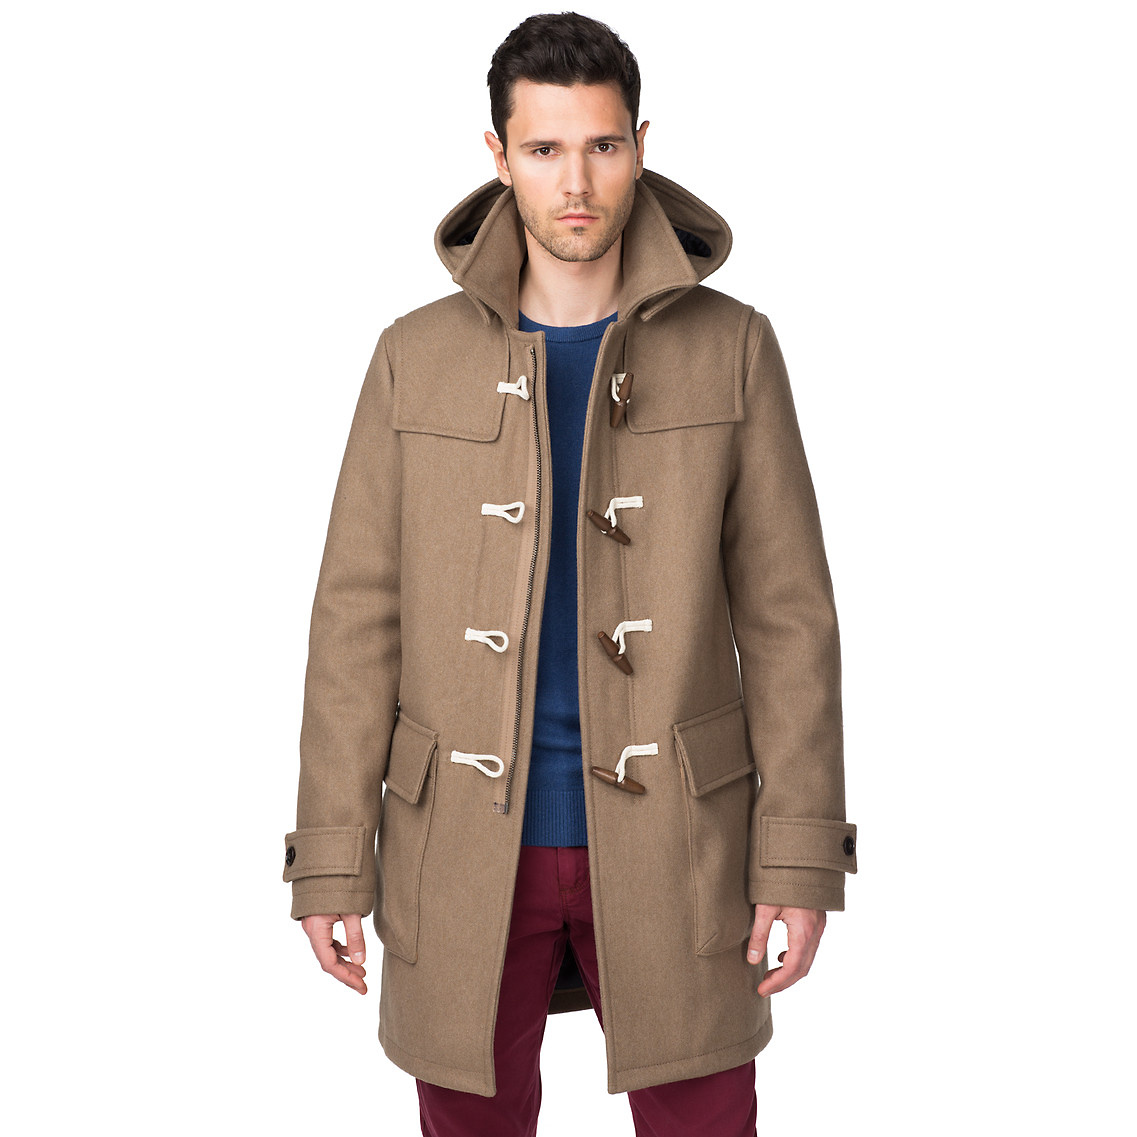 tommy hilfiger duffle coat in brown for men desert taupe lyst. Black Bedroom Furniture Sets. Home Design Ideas